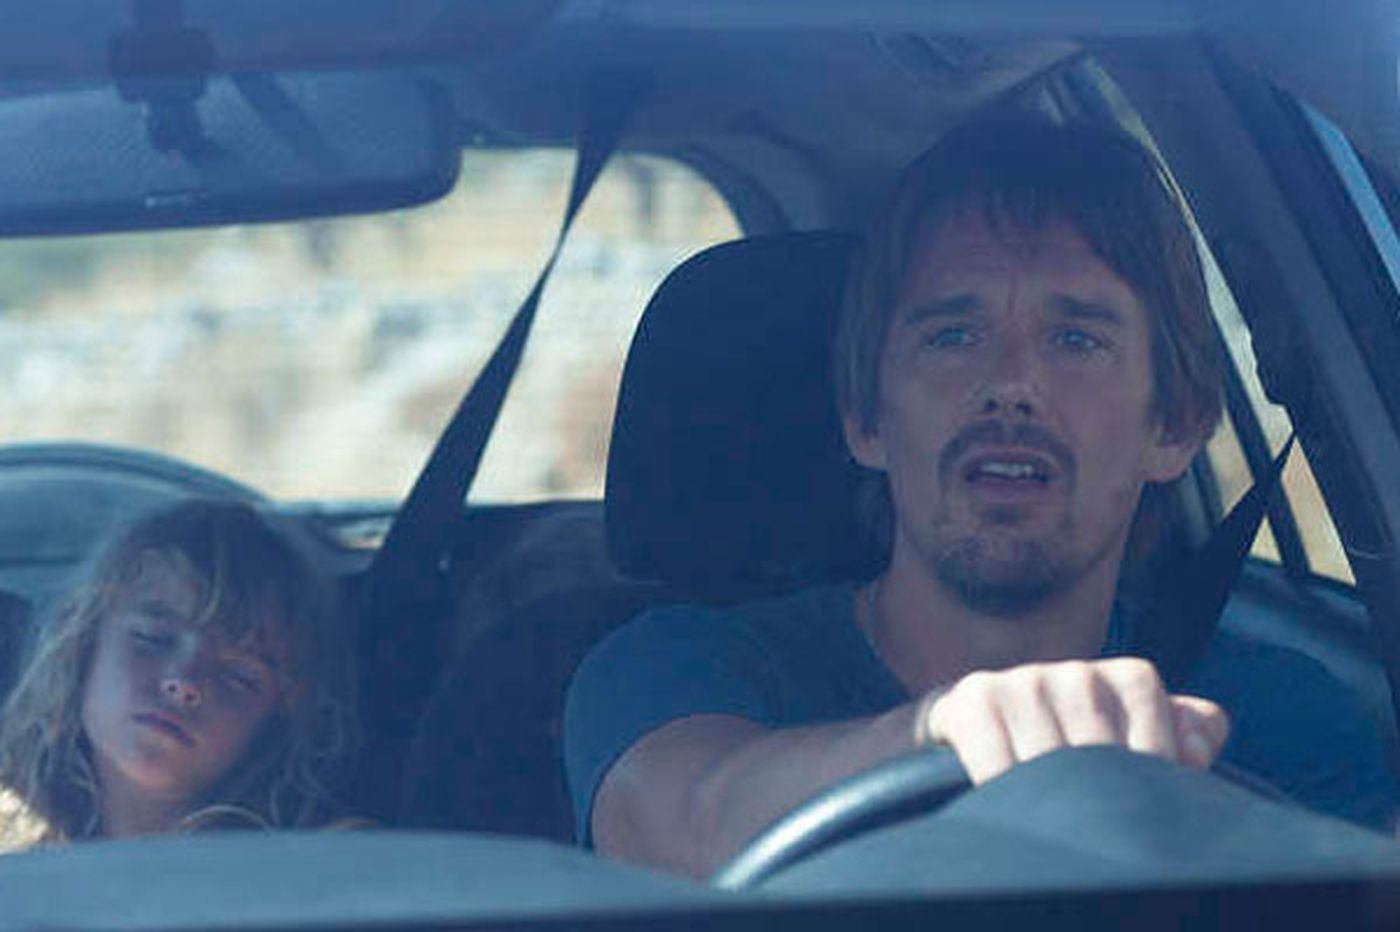 'Before Midnight': After the romance, the challenges of life